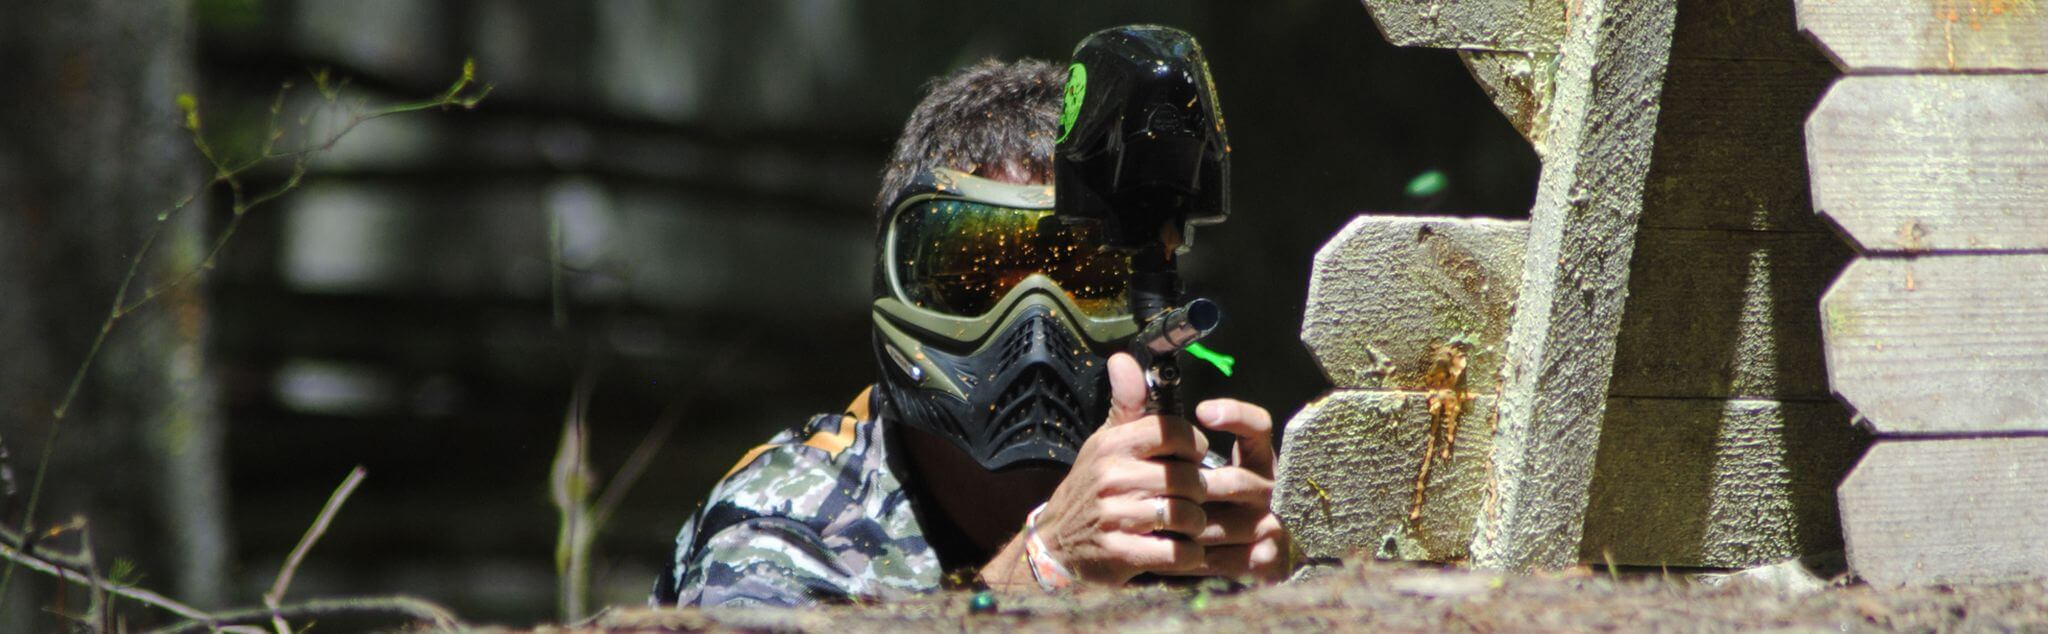 Paintball in Sebulcor